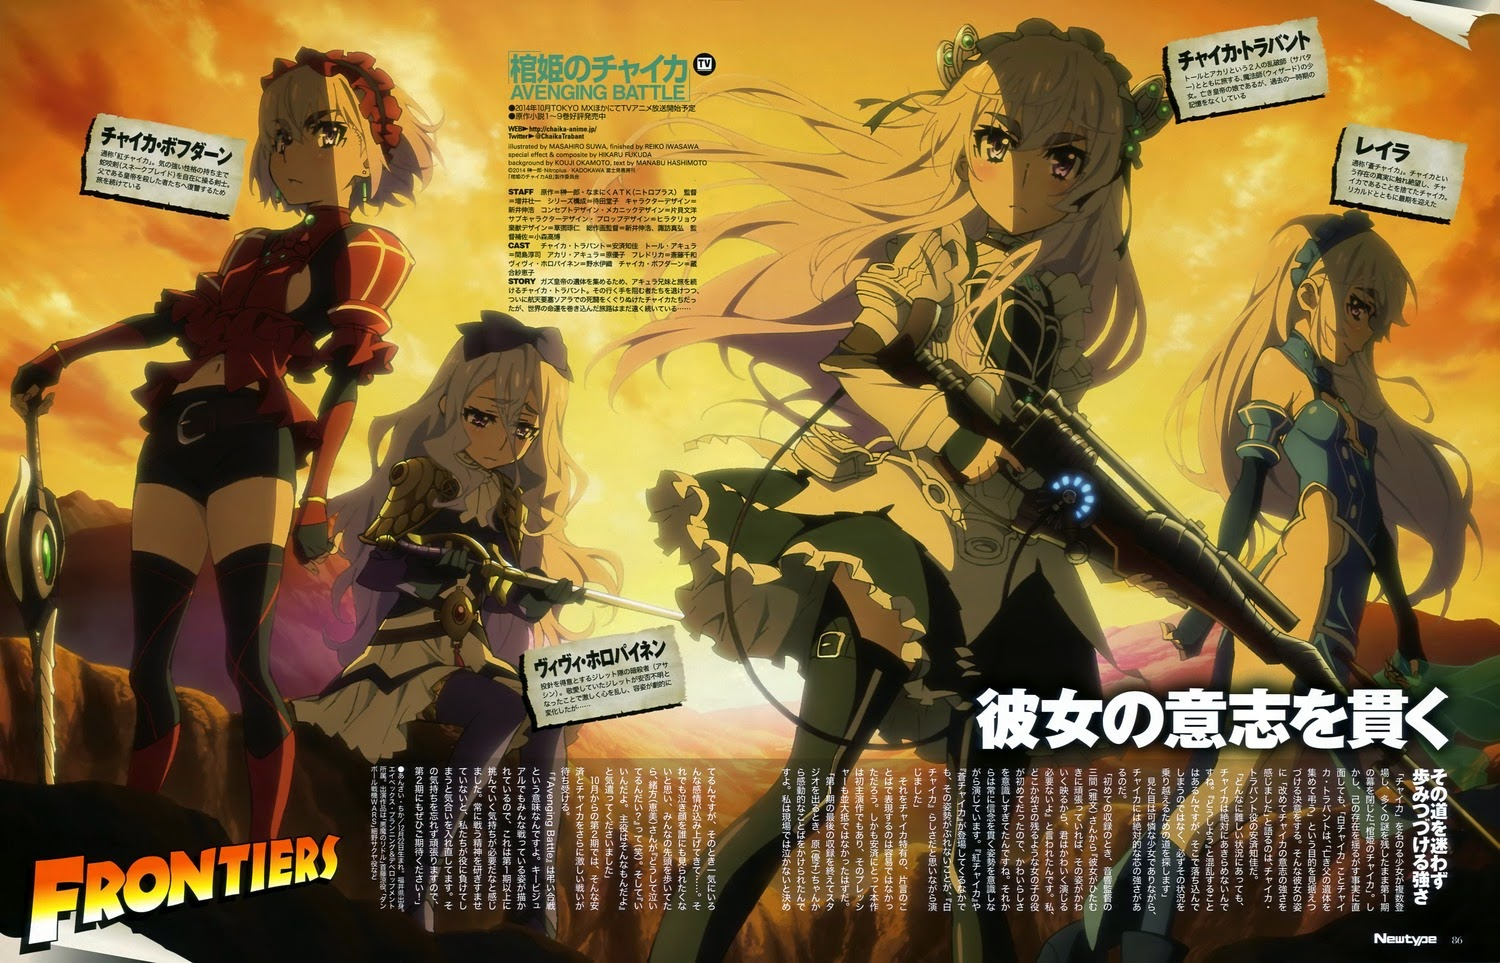 Anime Action Terbaik Hitsugi no Chaika: Avenging Battle